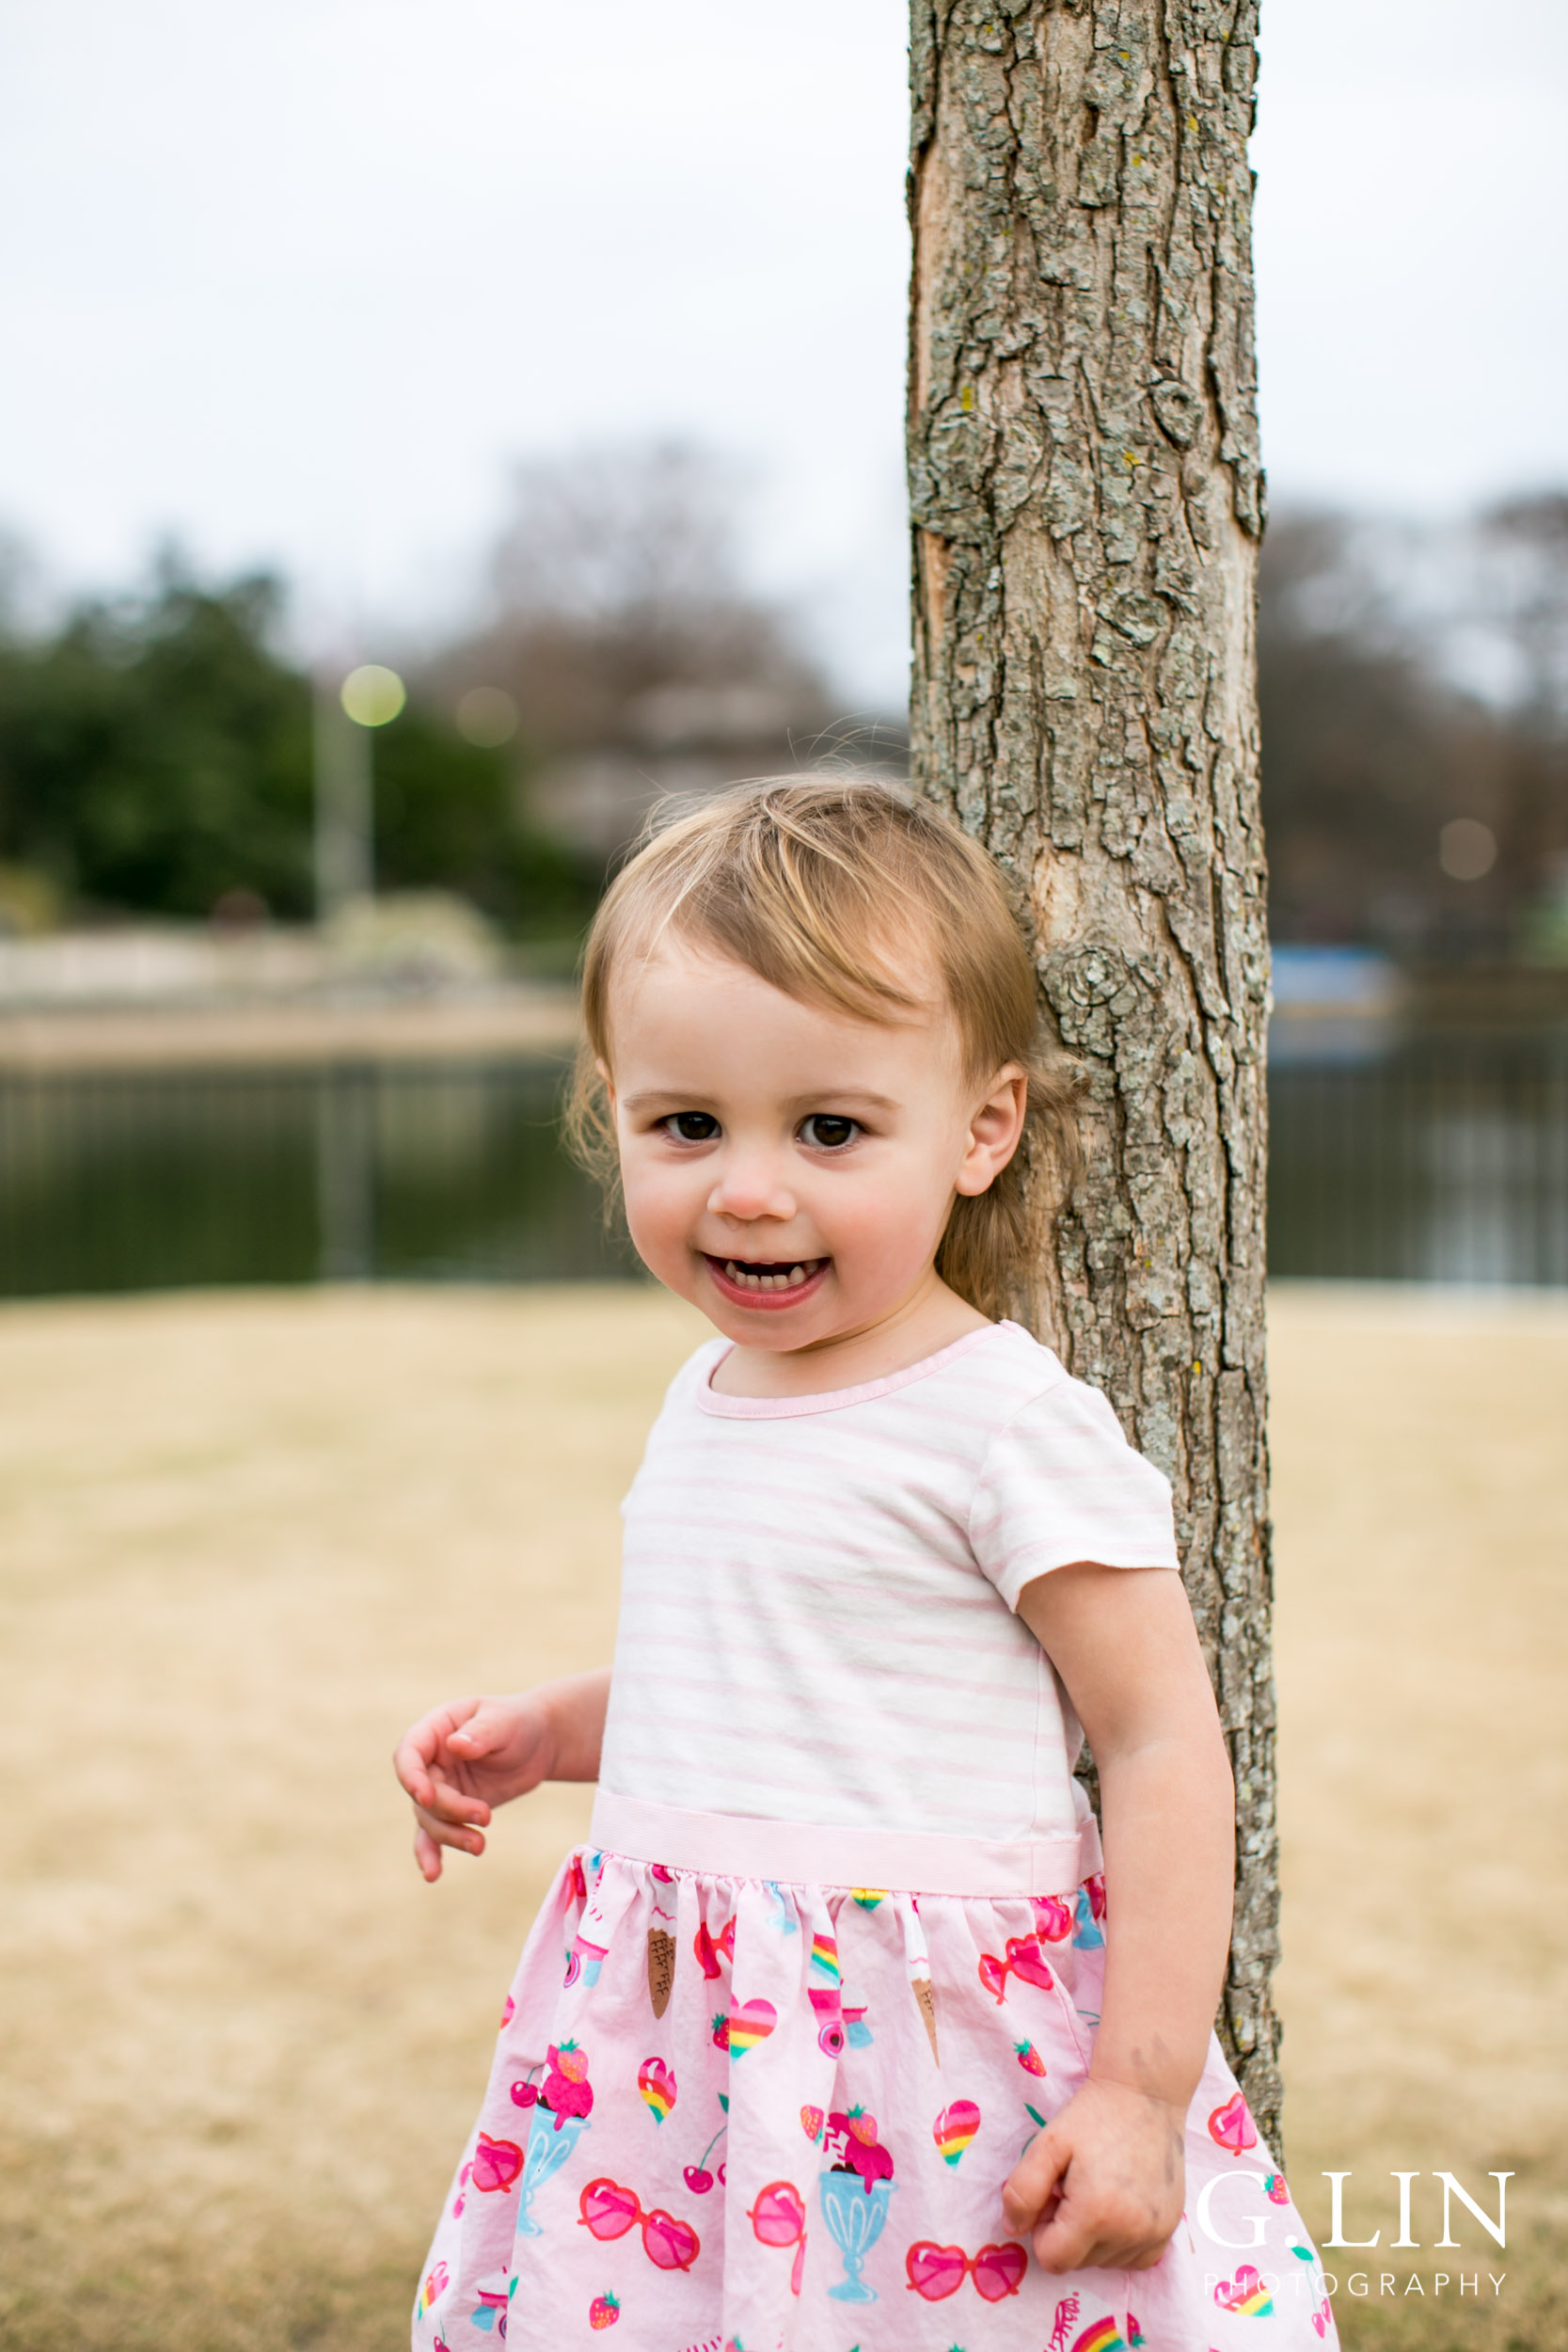 Raleigh Family Photographer | G. Lin Photography | Girl standing in field and smiling